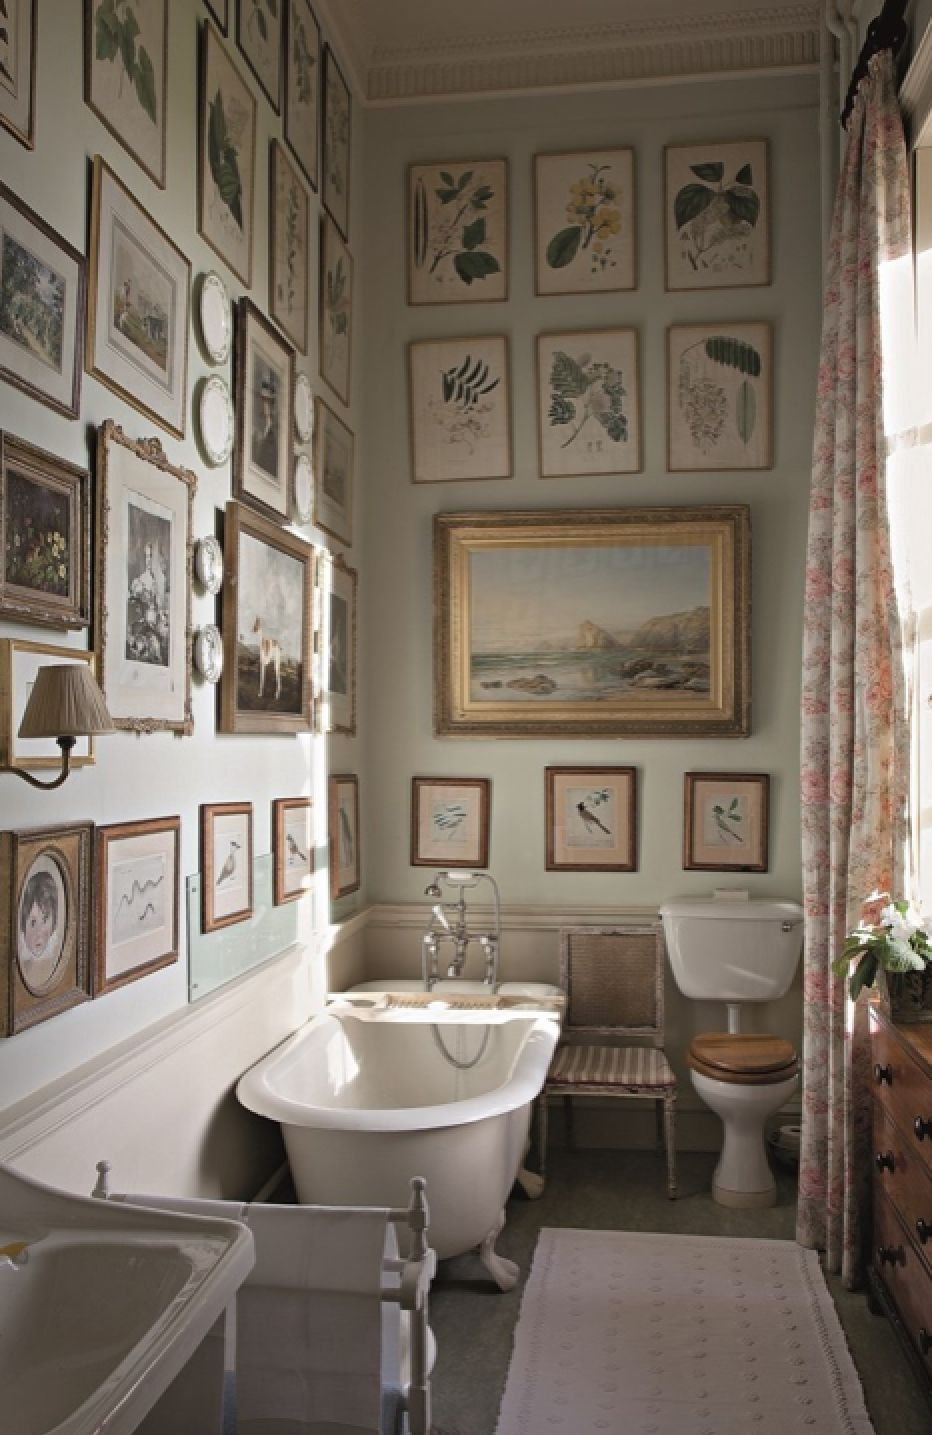 Period Style Bathroom Interior With Antique Bath And Sink